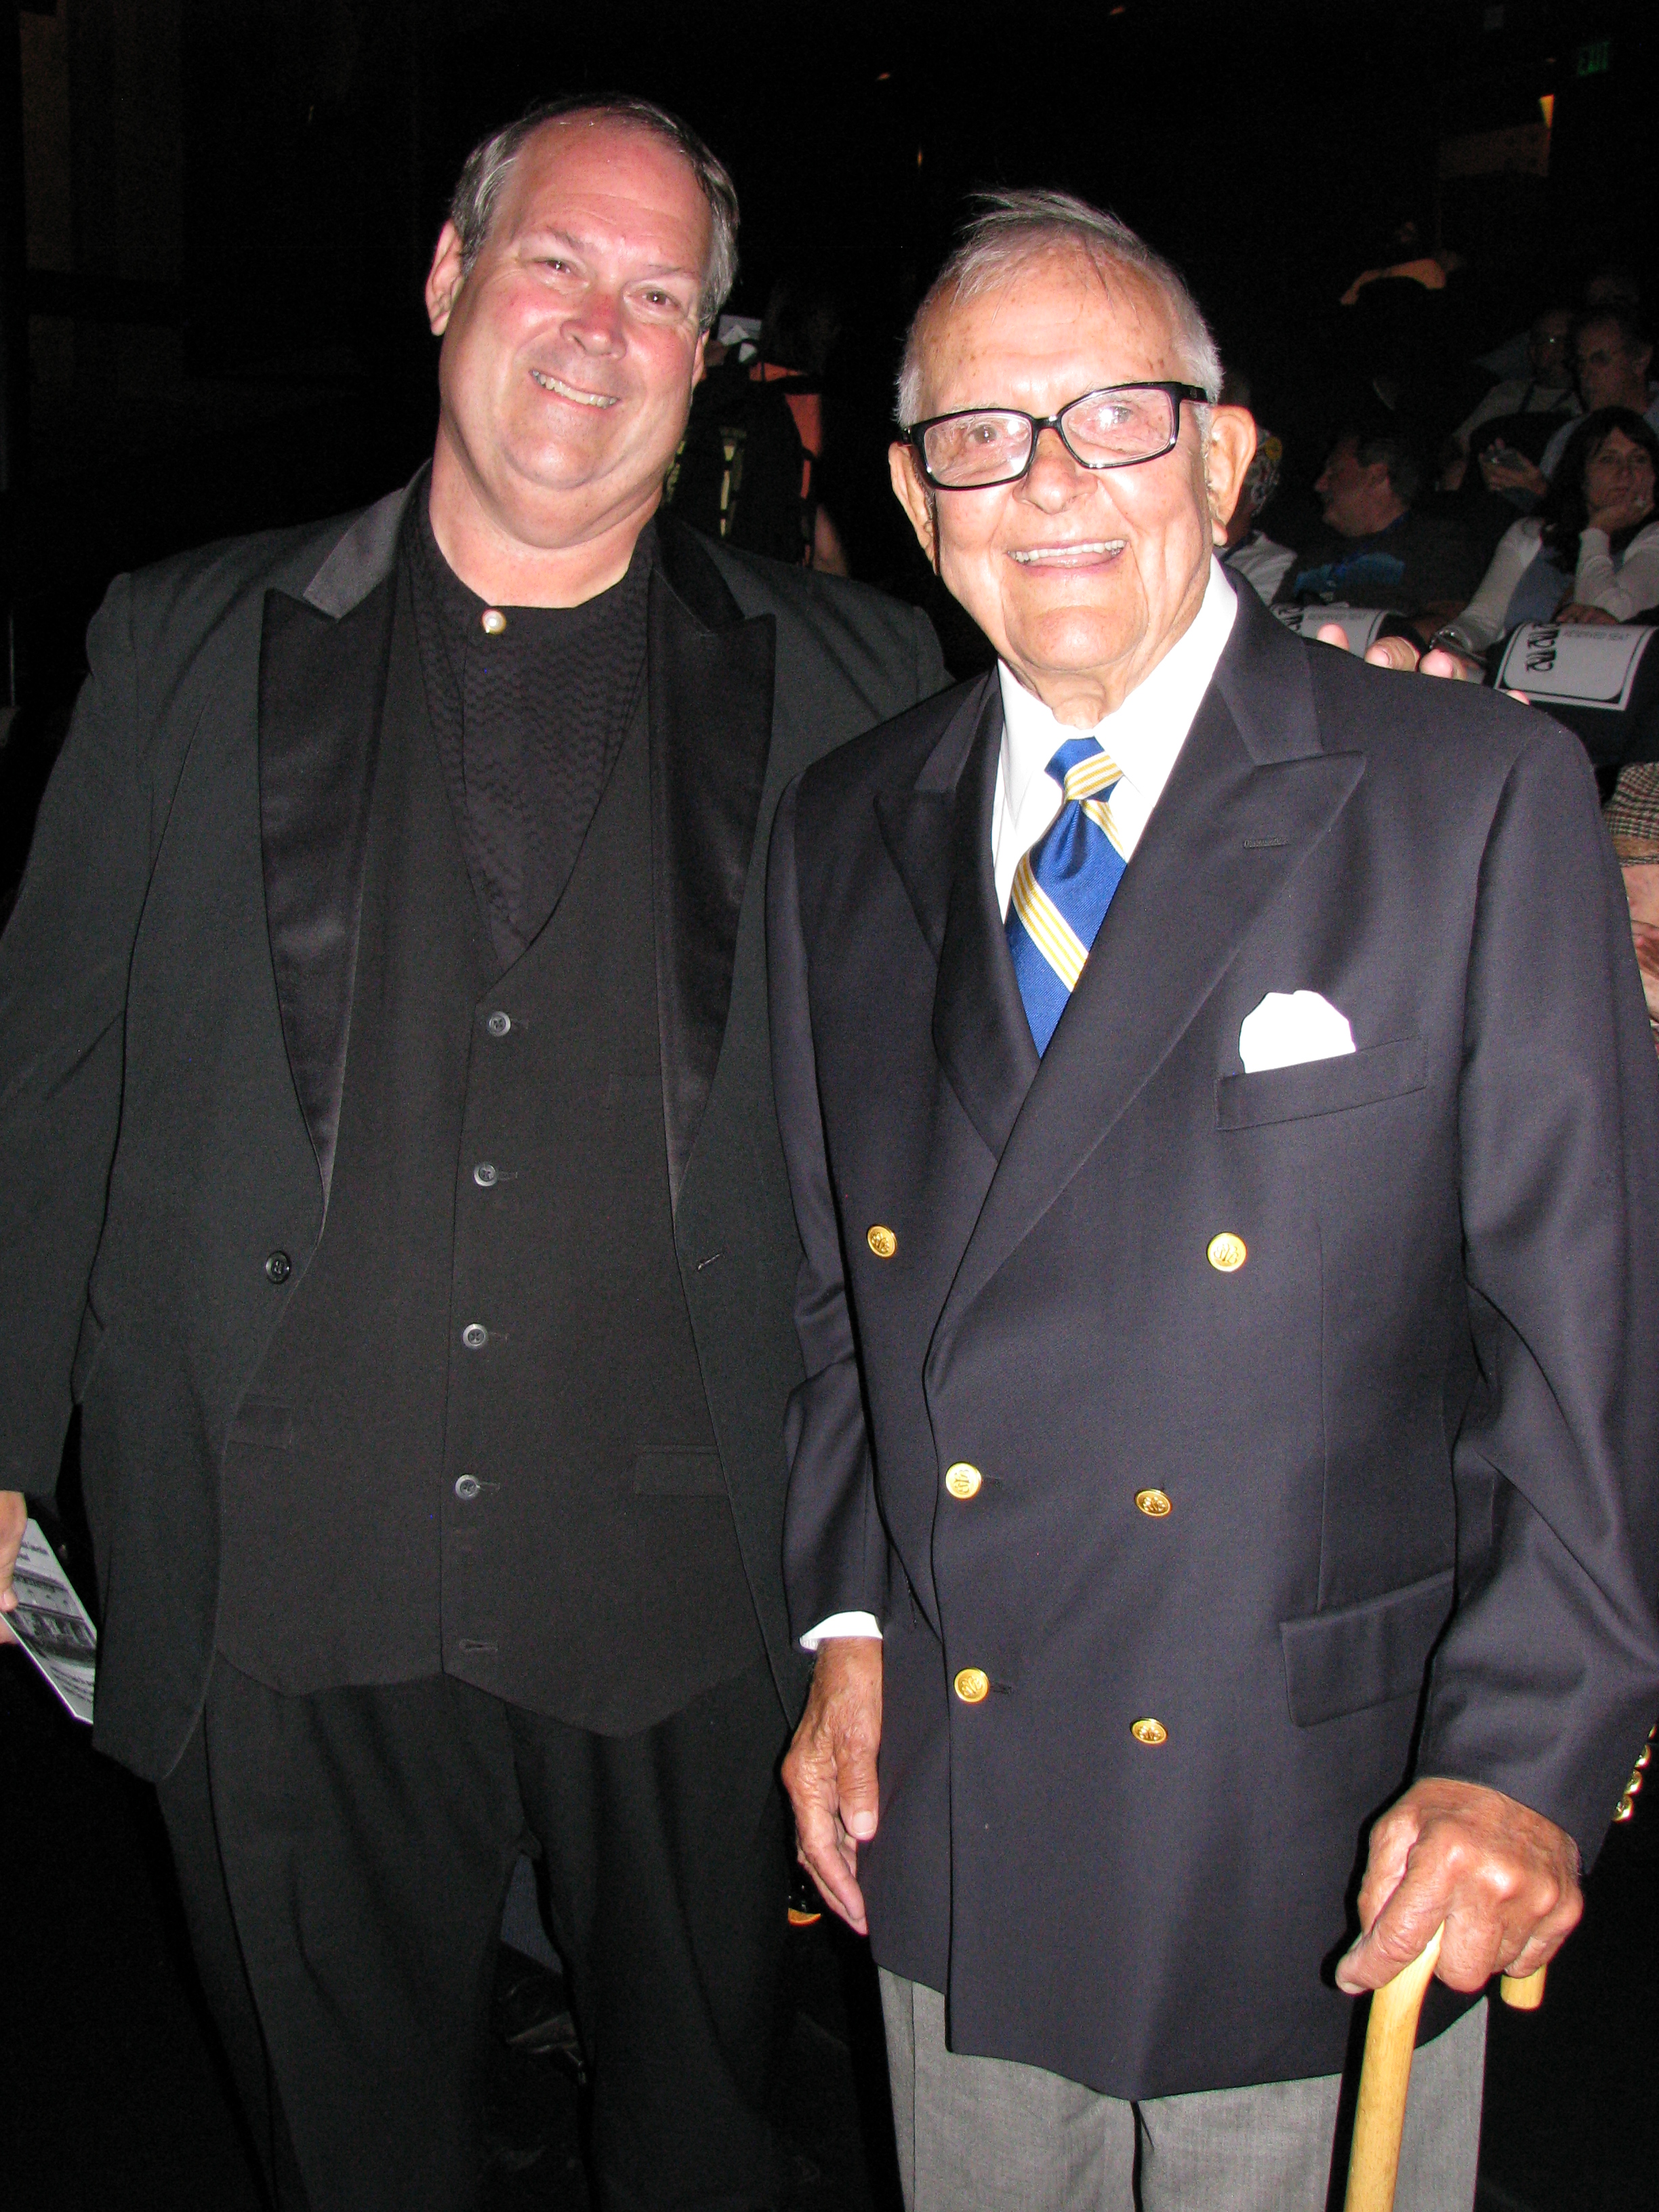 Opening Night at the Egyptian Theater and the stars would begin to arrive.  I got to greet long time LA TV personality Tom Hatten who would show L&H and Our Gang on his shows.